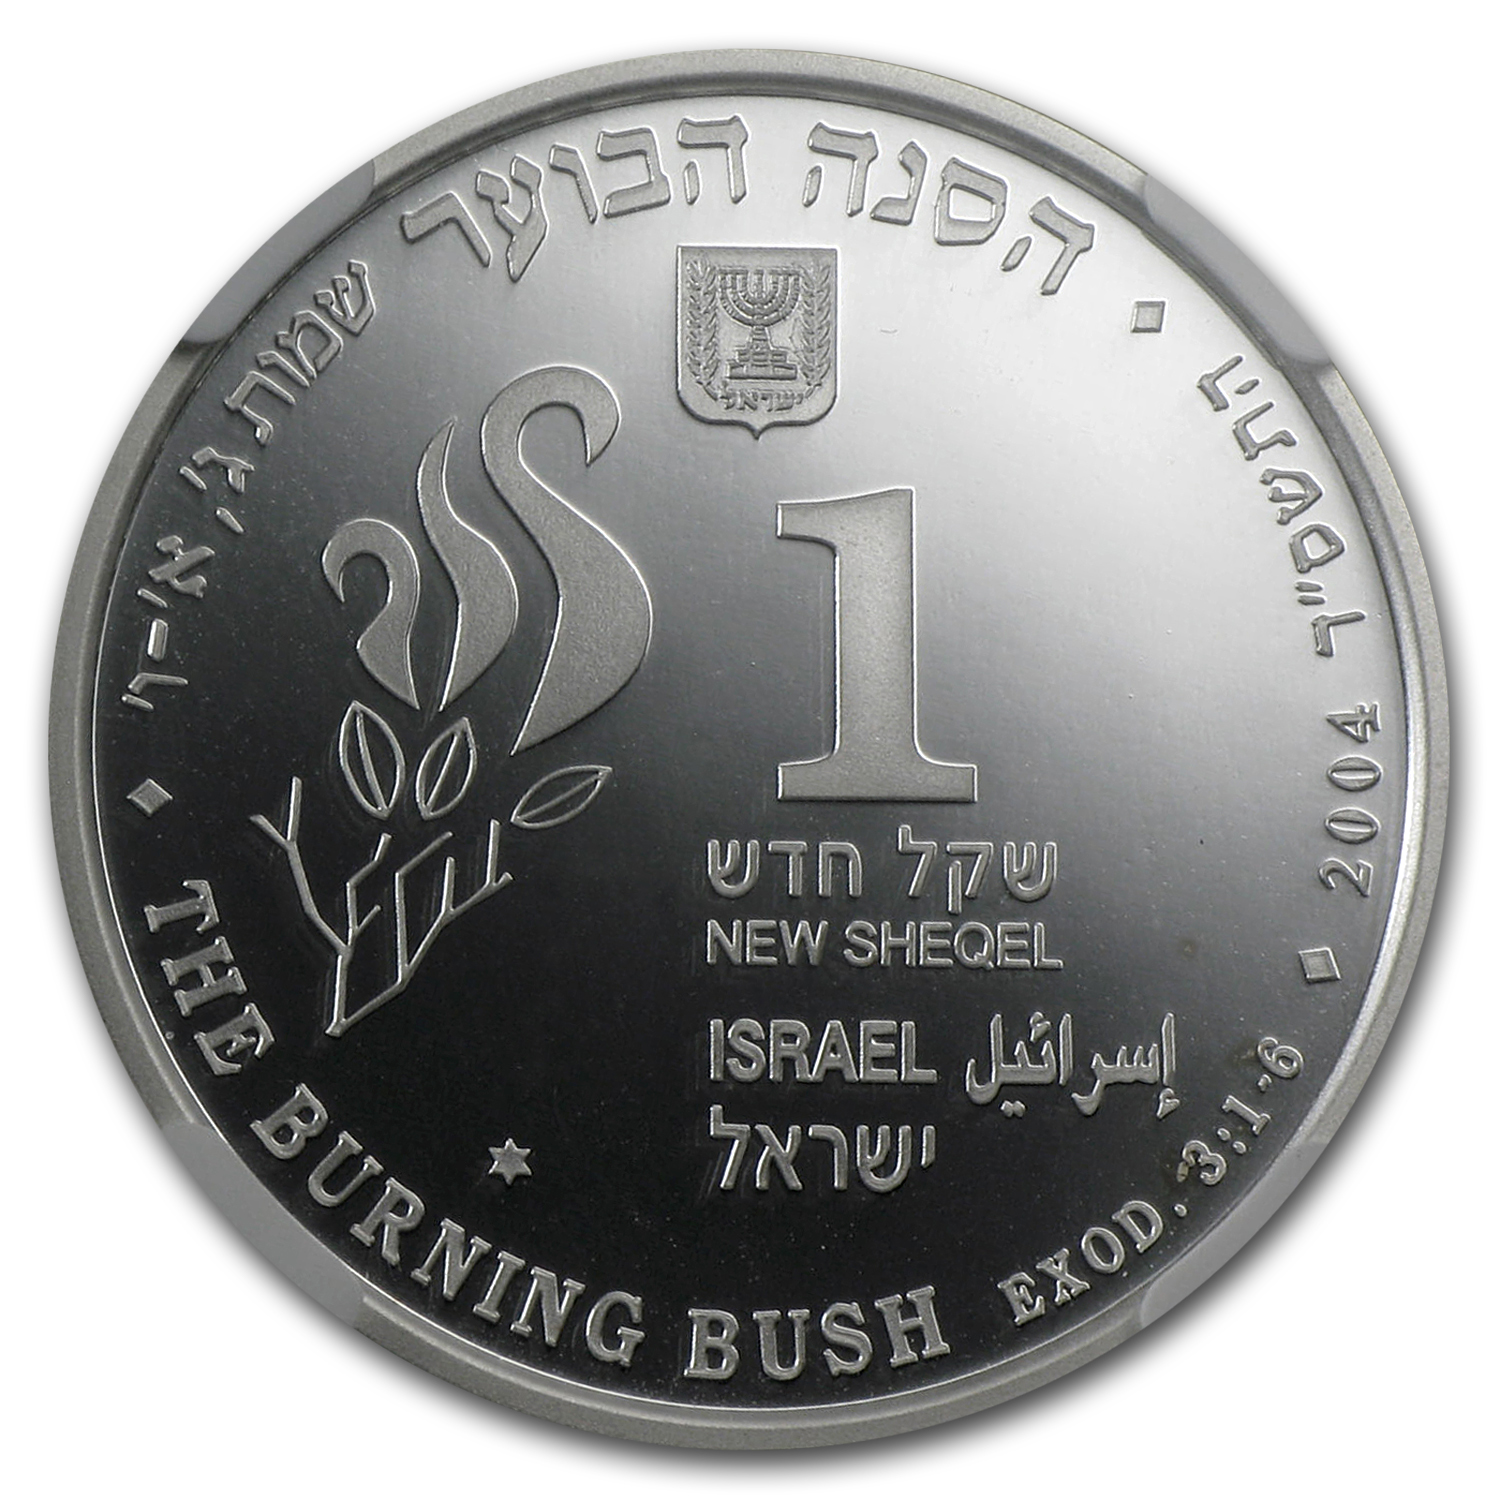 2004 Israel The Burning Bush Silver 1 NIS Coin MS-68 NGC